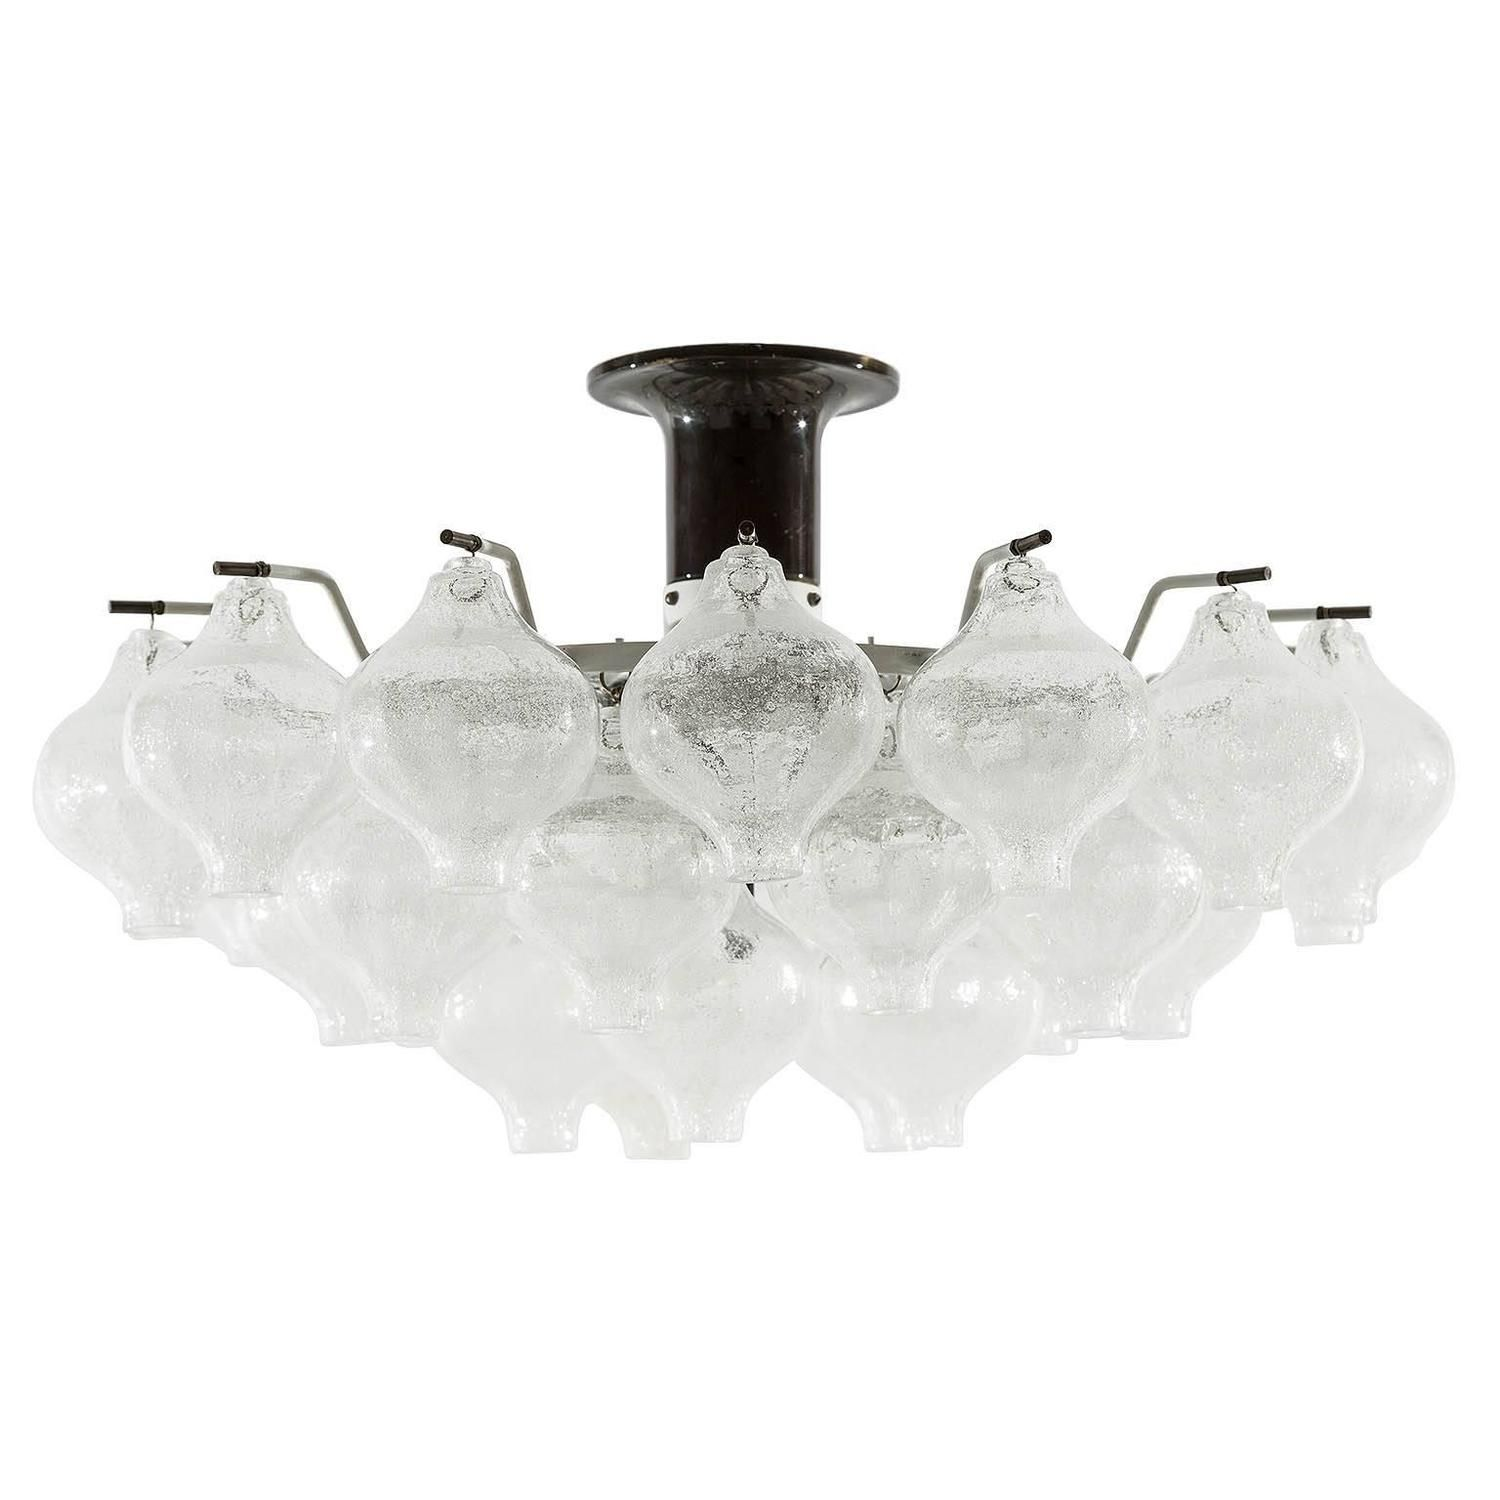 Large kalmar tulipan ceiling flush mount light fixture bubble glass large kalmar tulipan ceiling flush mount light fixture bubble glass 1960s arubaitofo Image collections